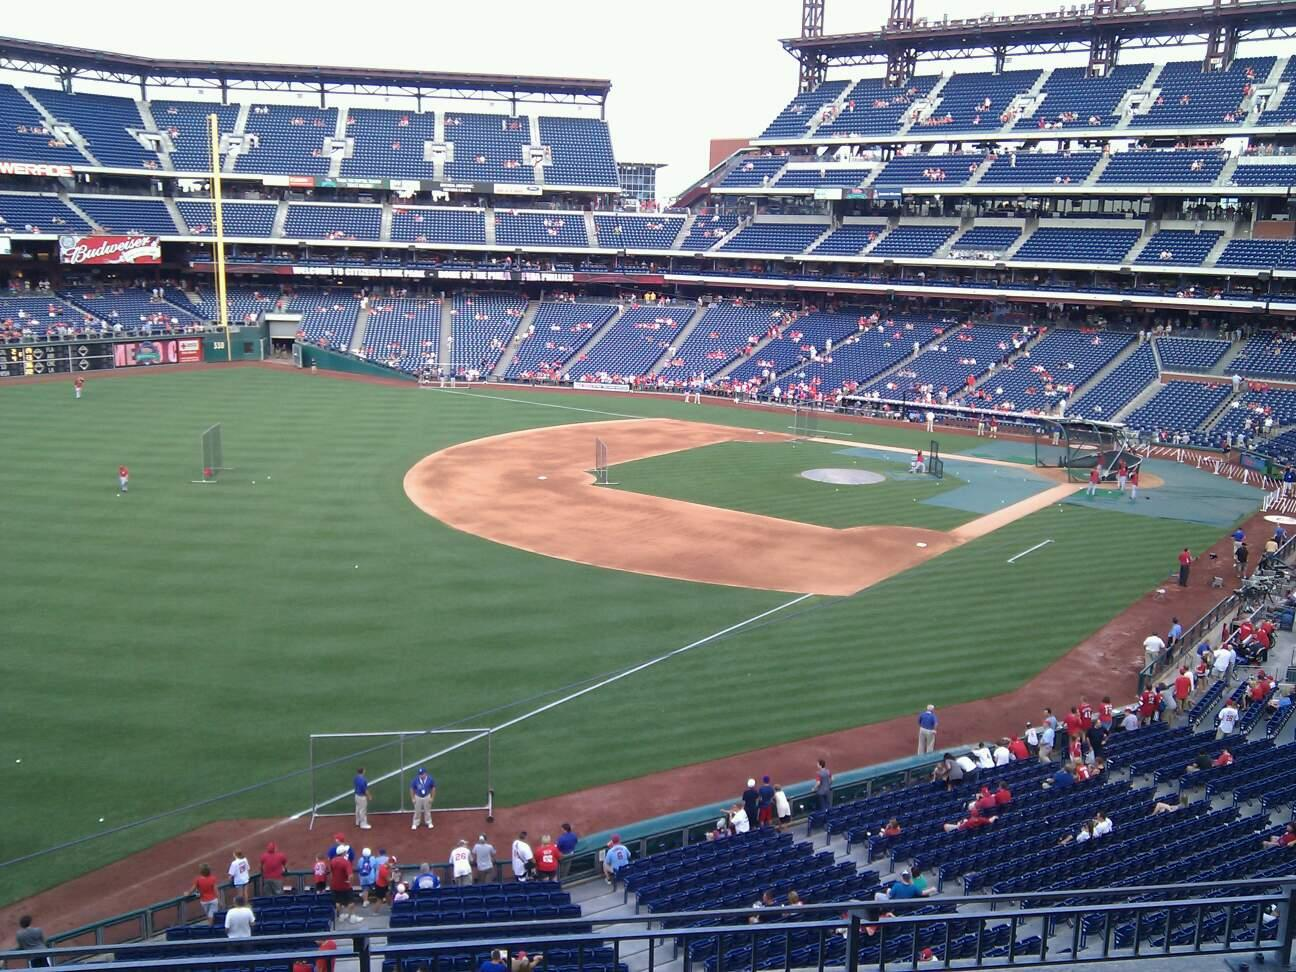 Citizens Bank Park Section 235 Row 4 Seat 15